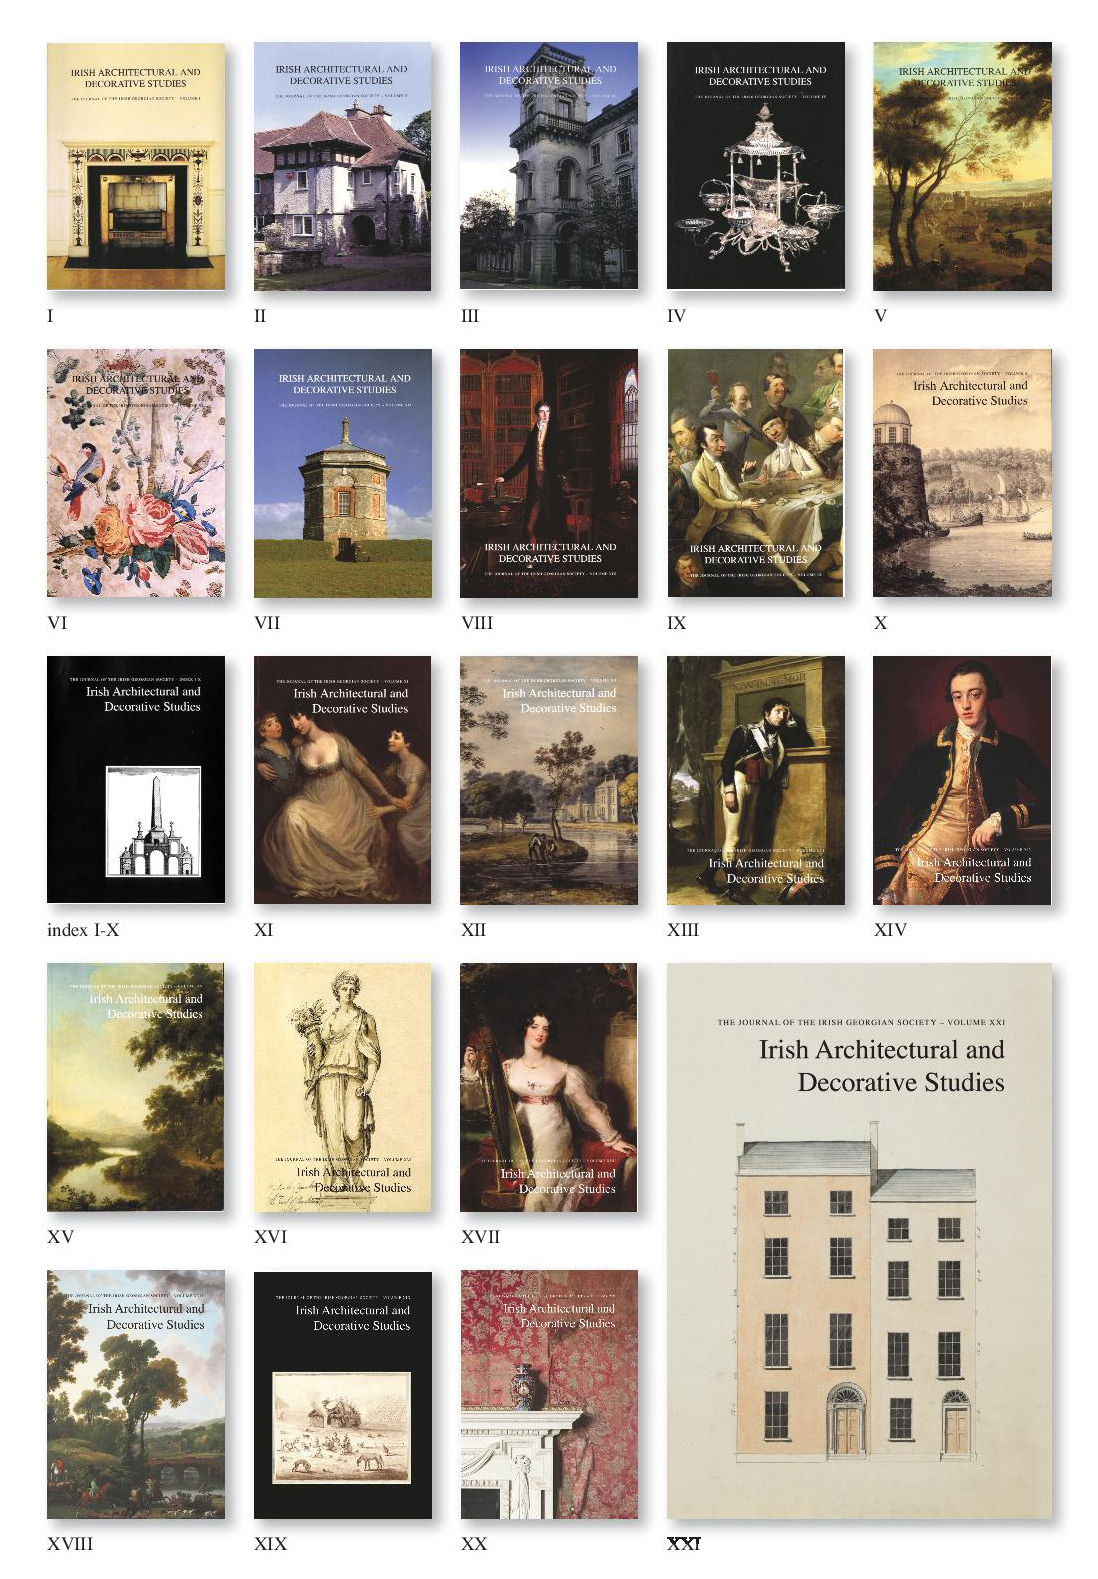 IADS21-covers-pages.jpg#asset:13824